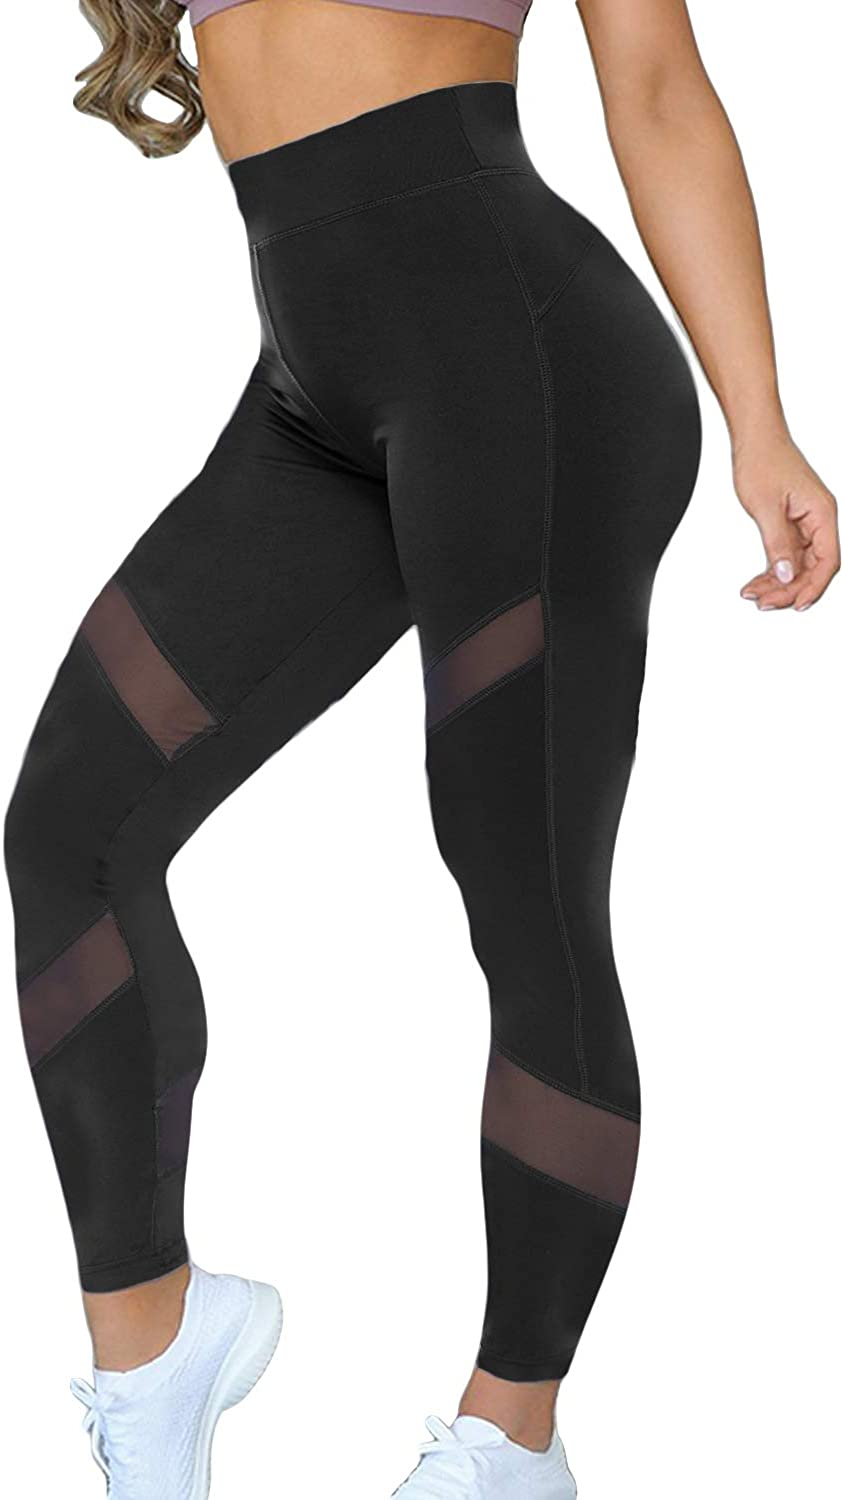 Kiwi Rata Women Sports Mesh Trouser Gym Workout Fitness Capris Yoga Pant Legging At Amazon Women S Clothing Store